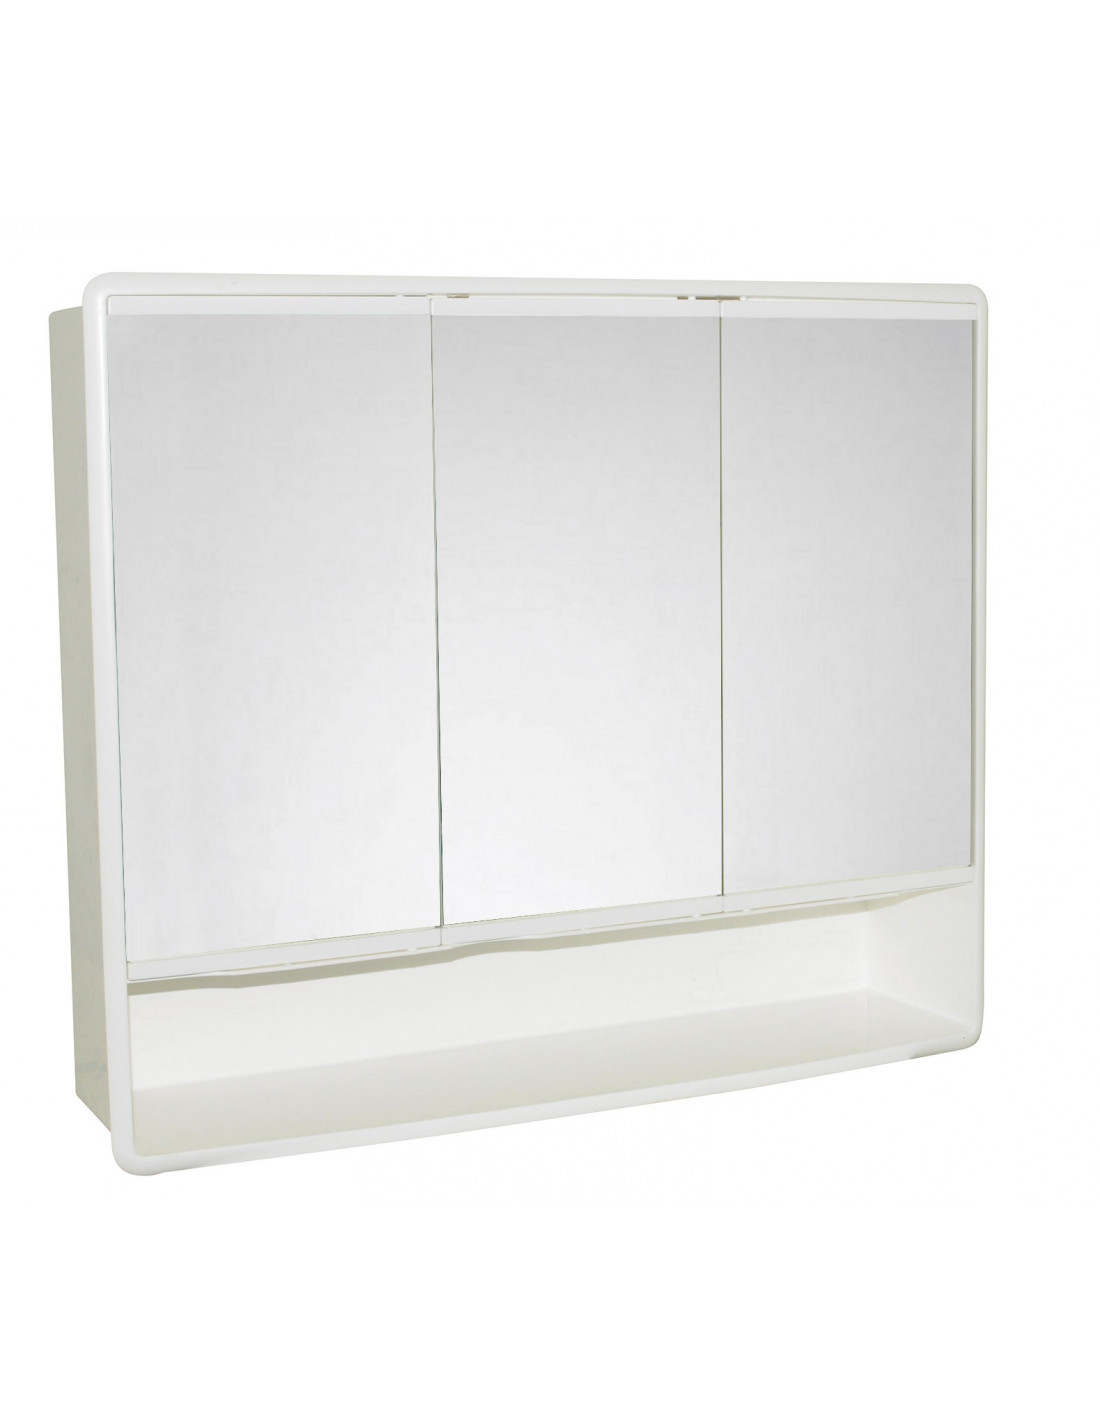 galedo armoire de toilette 3 portes plastique blanc. Black Bedroom Furniture Sets. Home Design Ideas